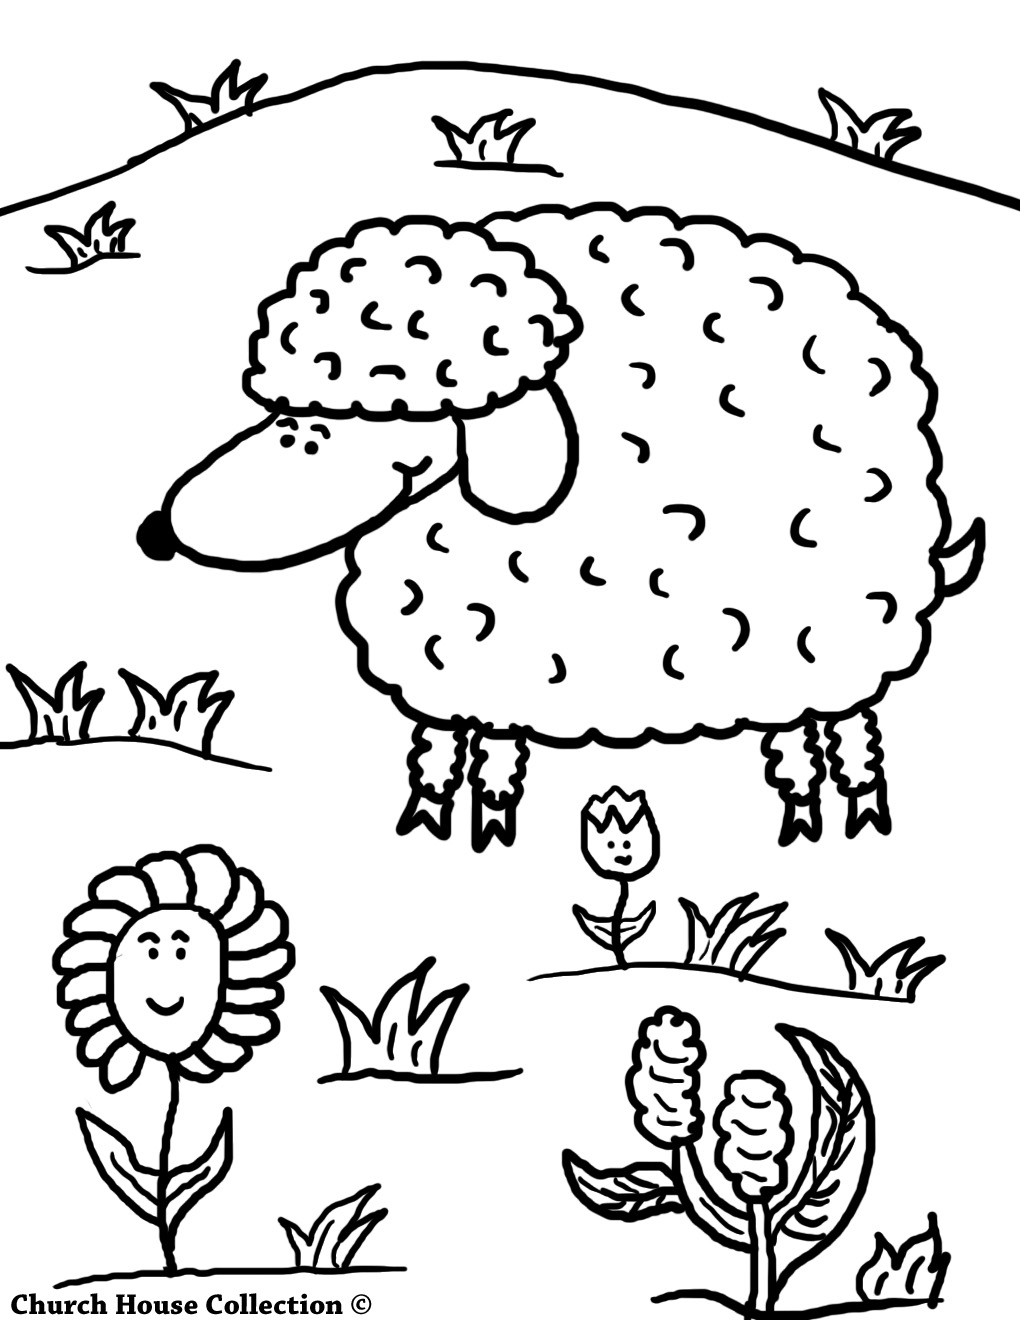 HWFD - Jesus and Sheep Coloring Page picture | HD Wallapapers Free ...